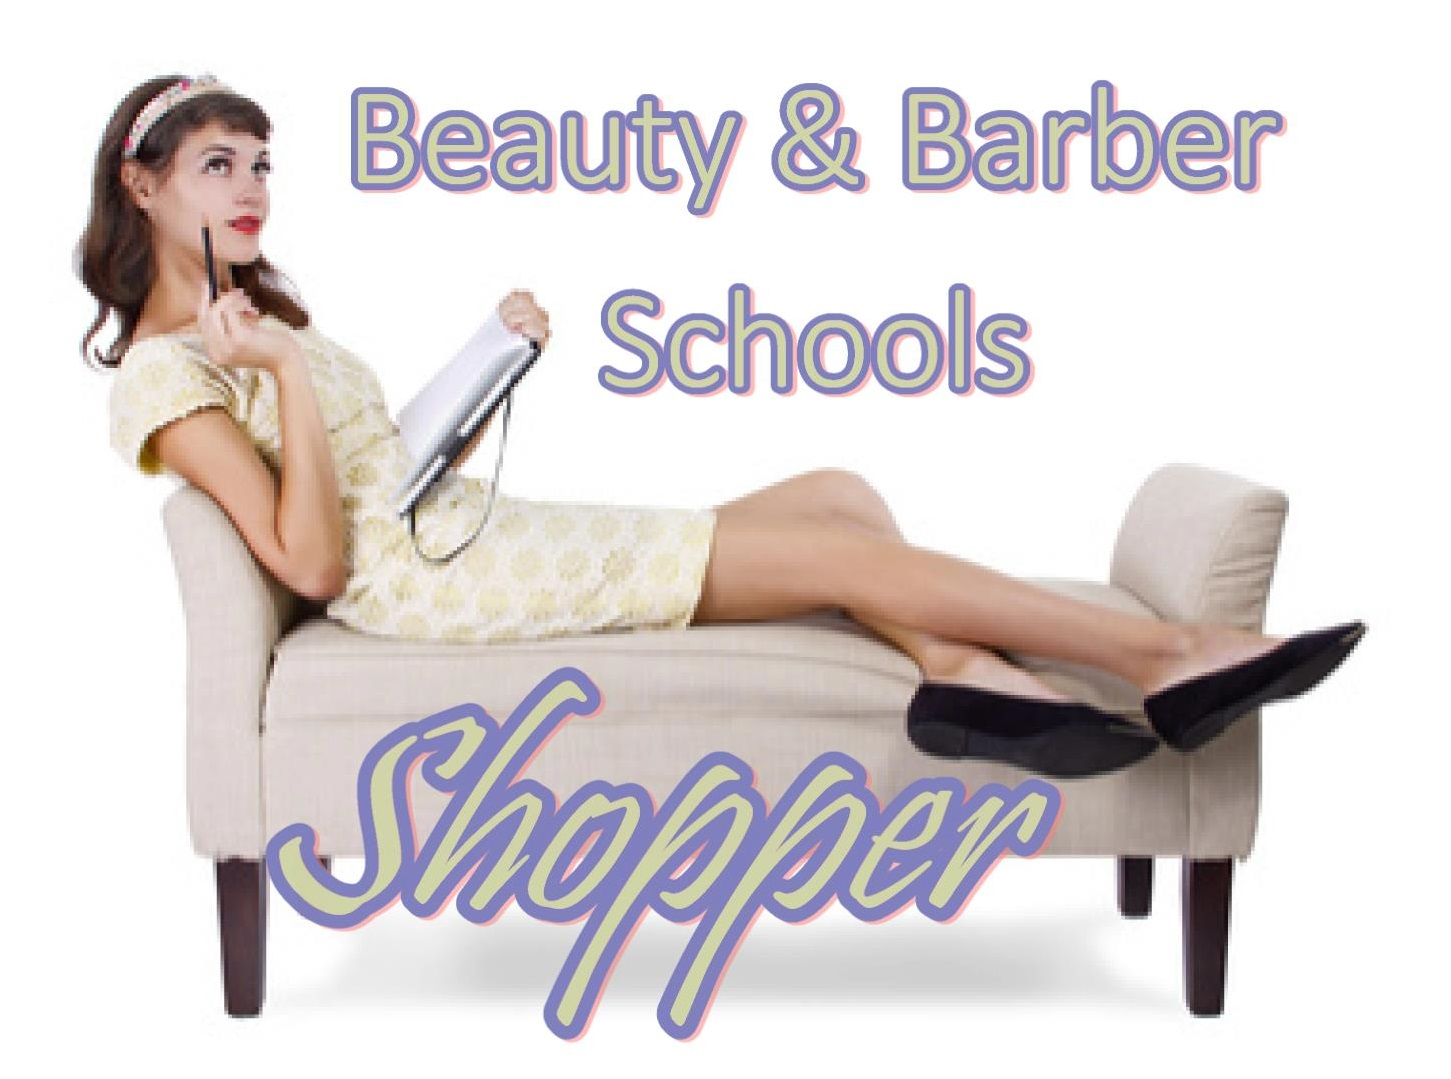 find barber and beauty schools in the US